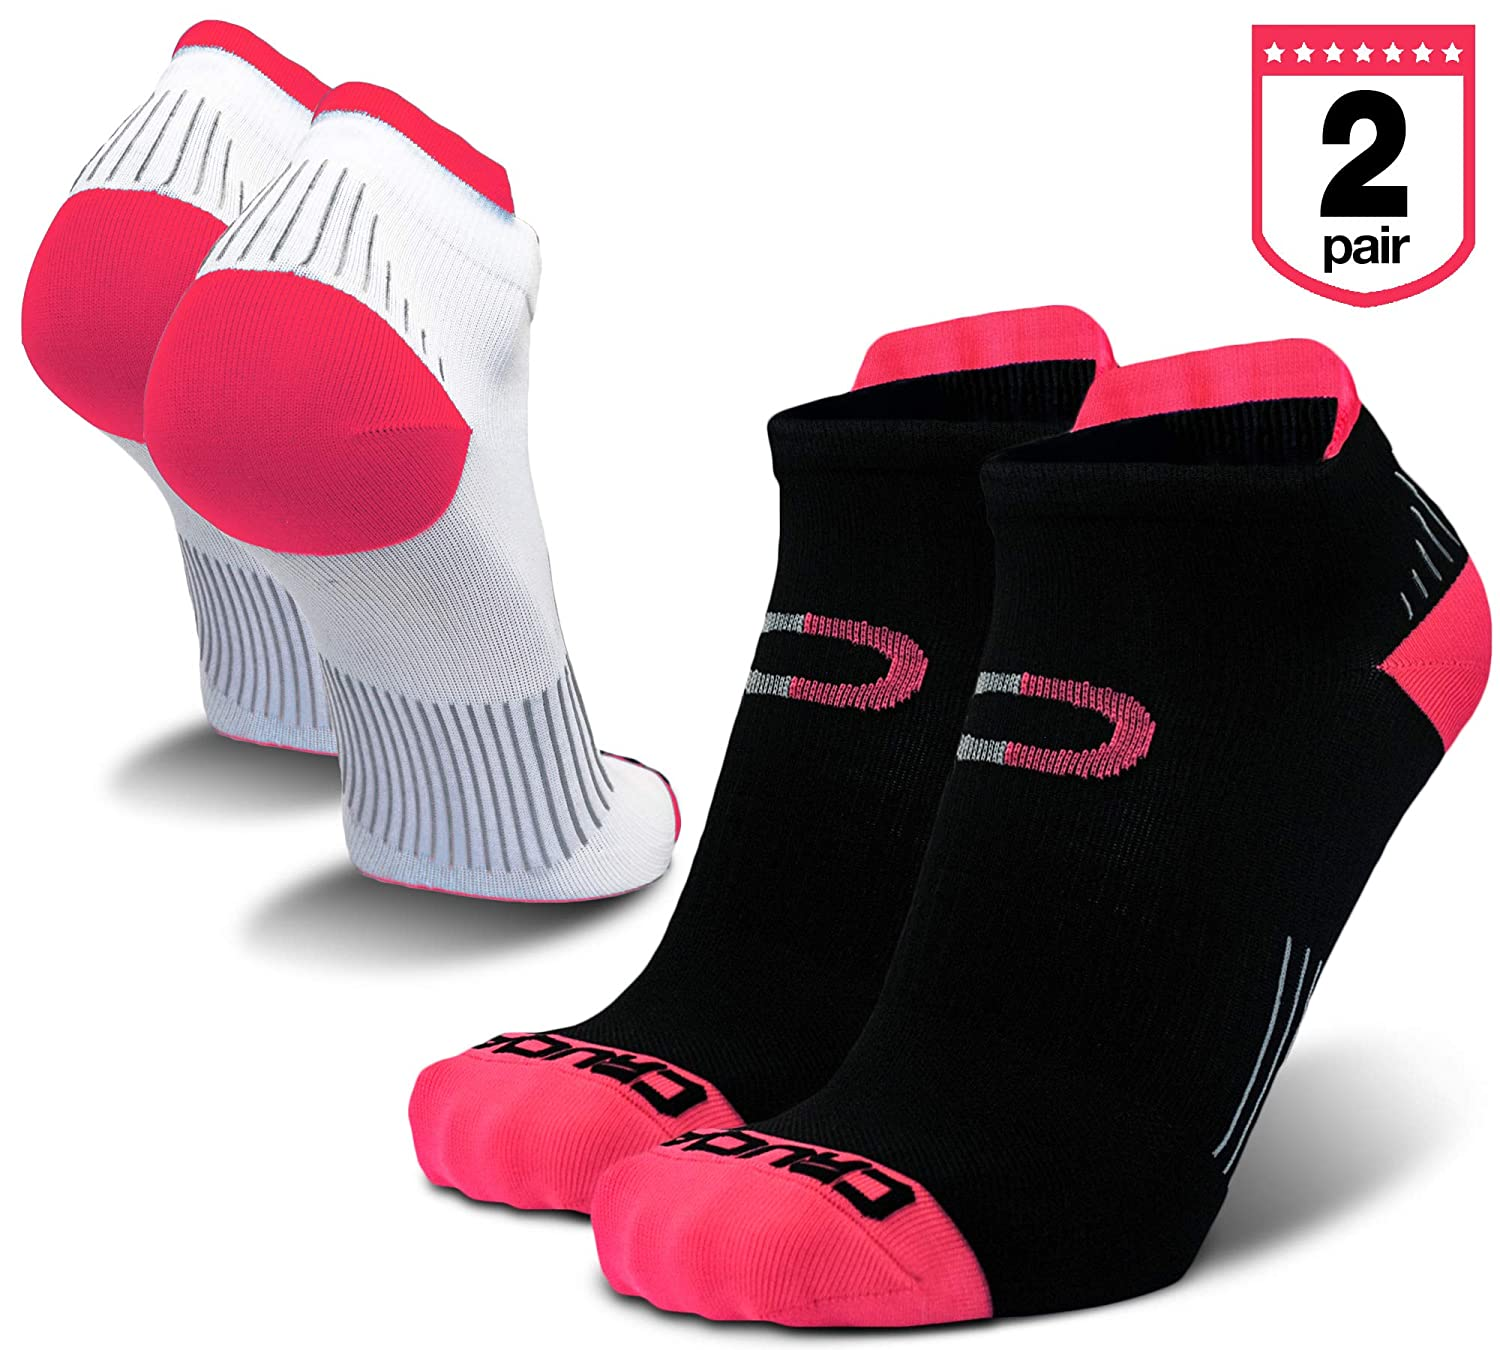 Low Cut Compression Running Socks for Men & Women (2 Pairs) with Athletic No Show Ankle Tab Crucial Compression